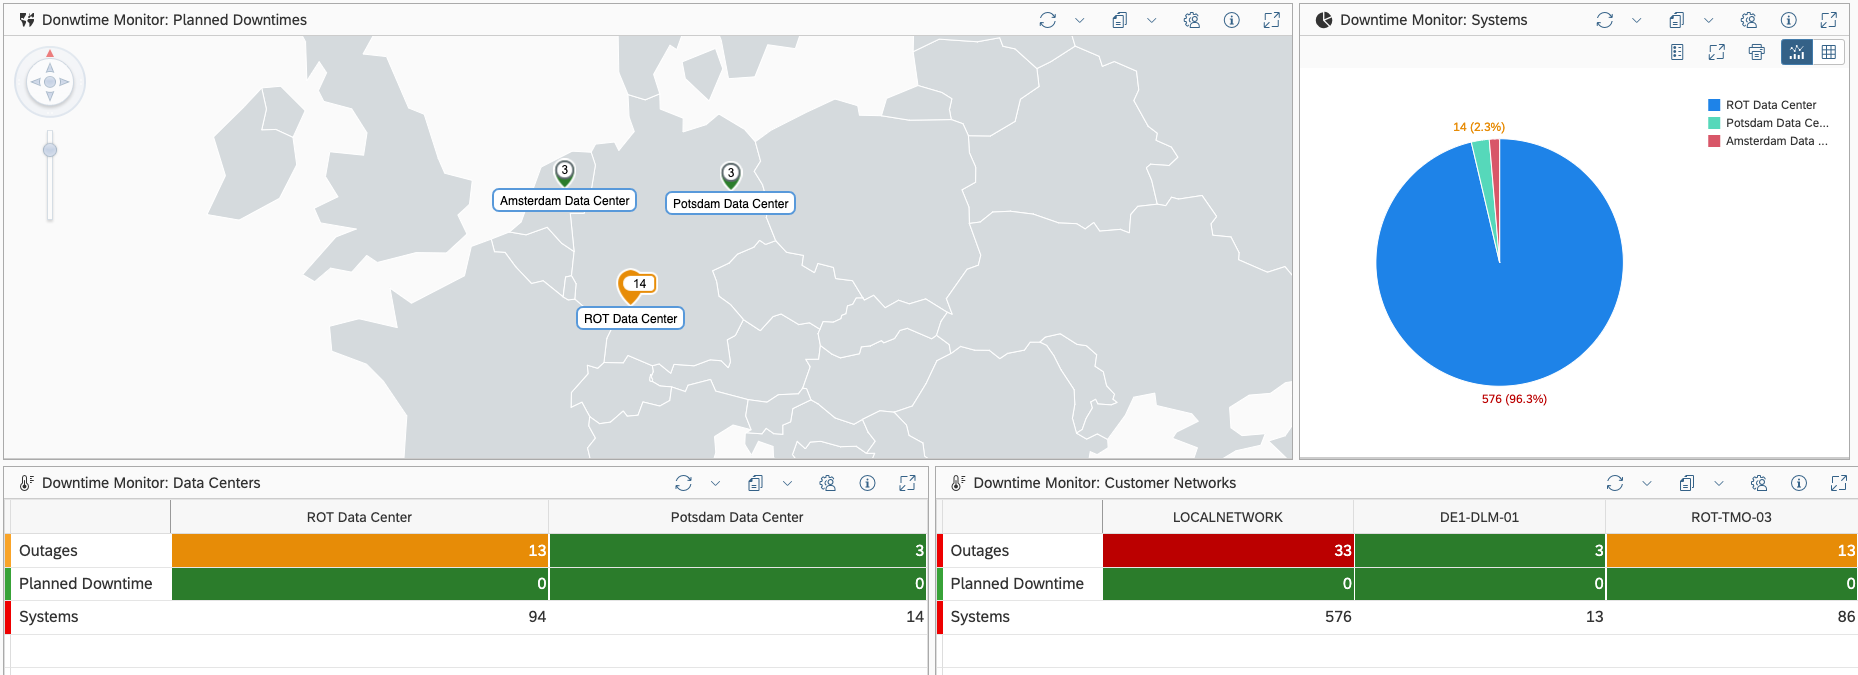 Example%20of%20Downtime%20Monitor%20Data%20provider%20in%20OCC%20Dashboard